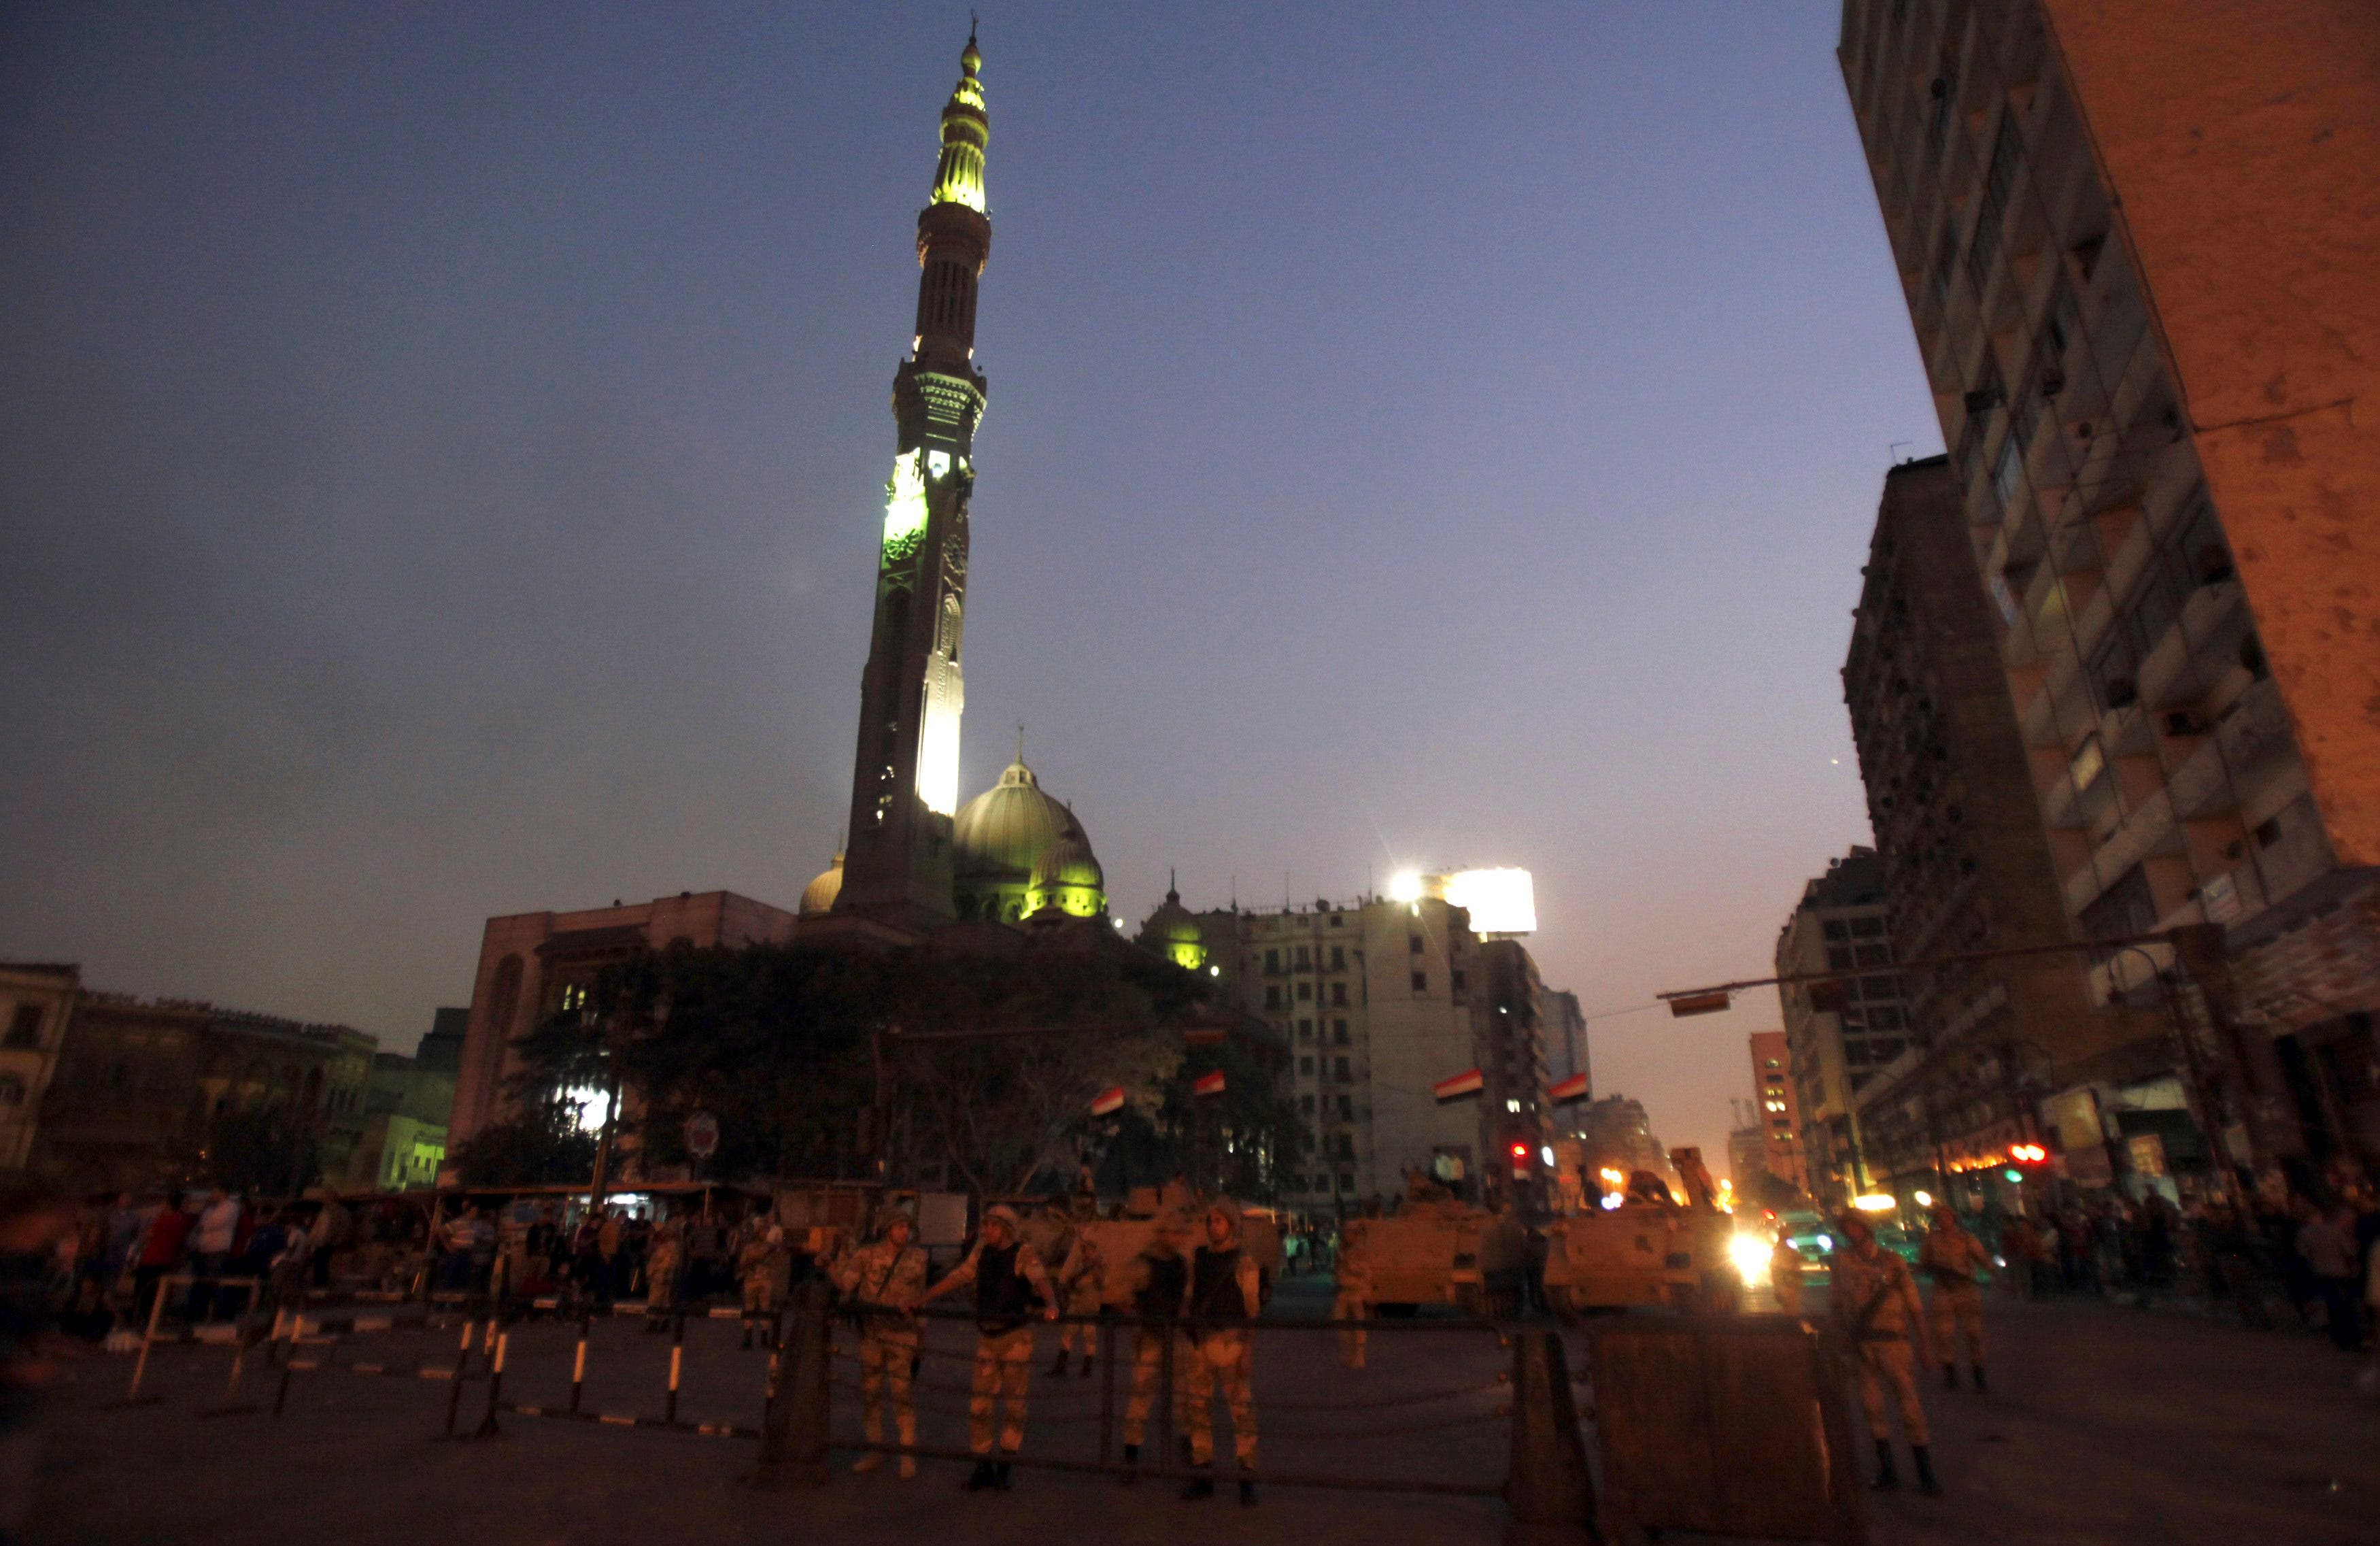 Army soldiers stand guard and take positions in front of al-Fath mosque at Ramsis Square during clashes between anti-Mursi protesters, and members of the Muslim Brotherhood and ousted Egyptian President Mohamed Mursi supporters, in Cairo October 6, 2013. (Reuters)